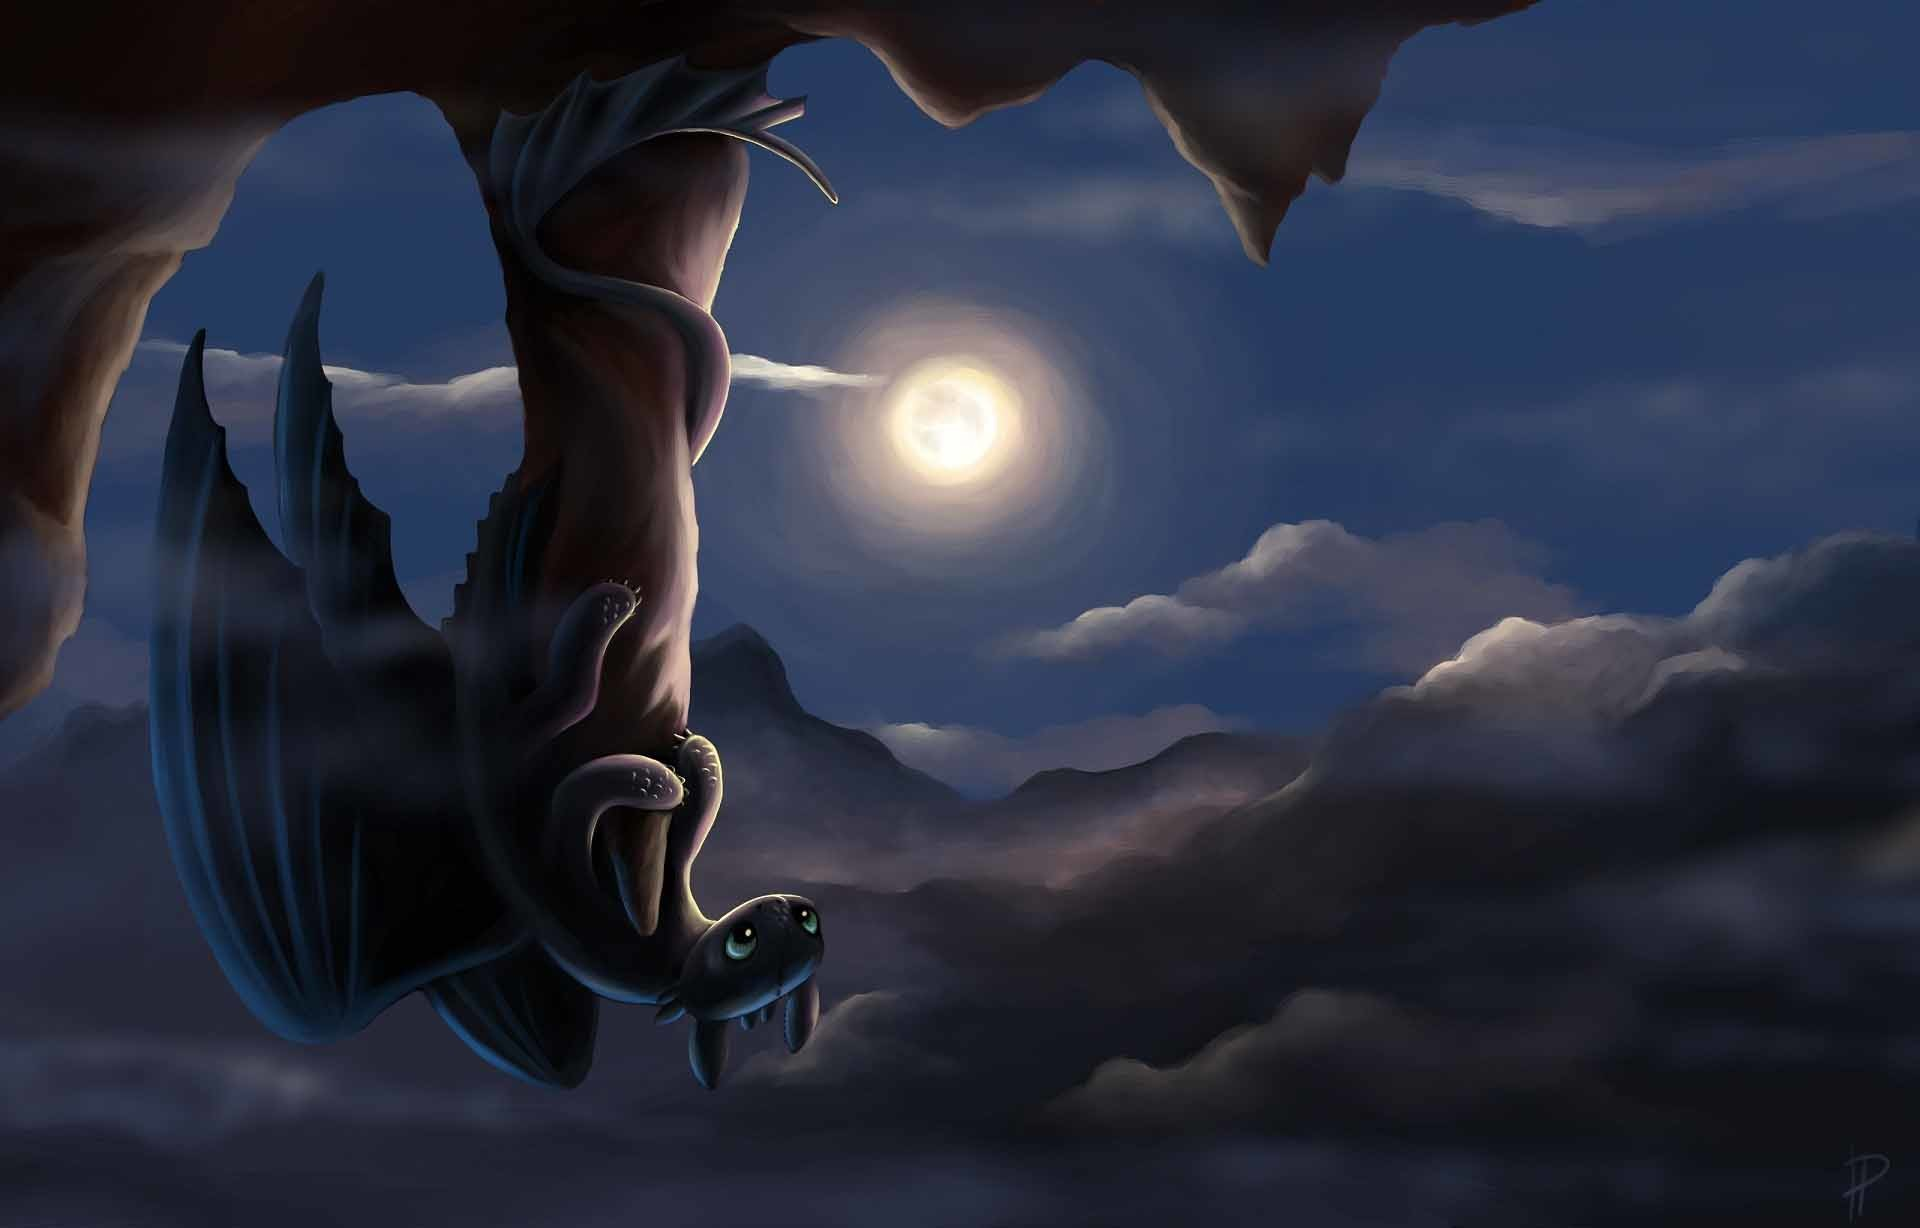 How To Train Your Dragon Toothless Art HD Wallpaper #3234   Frenzia.